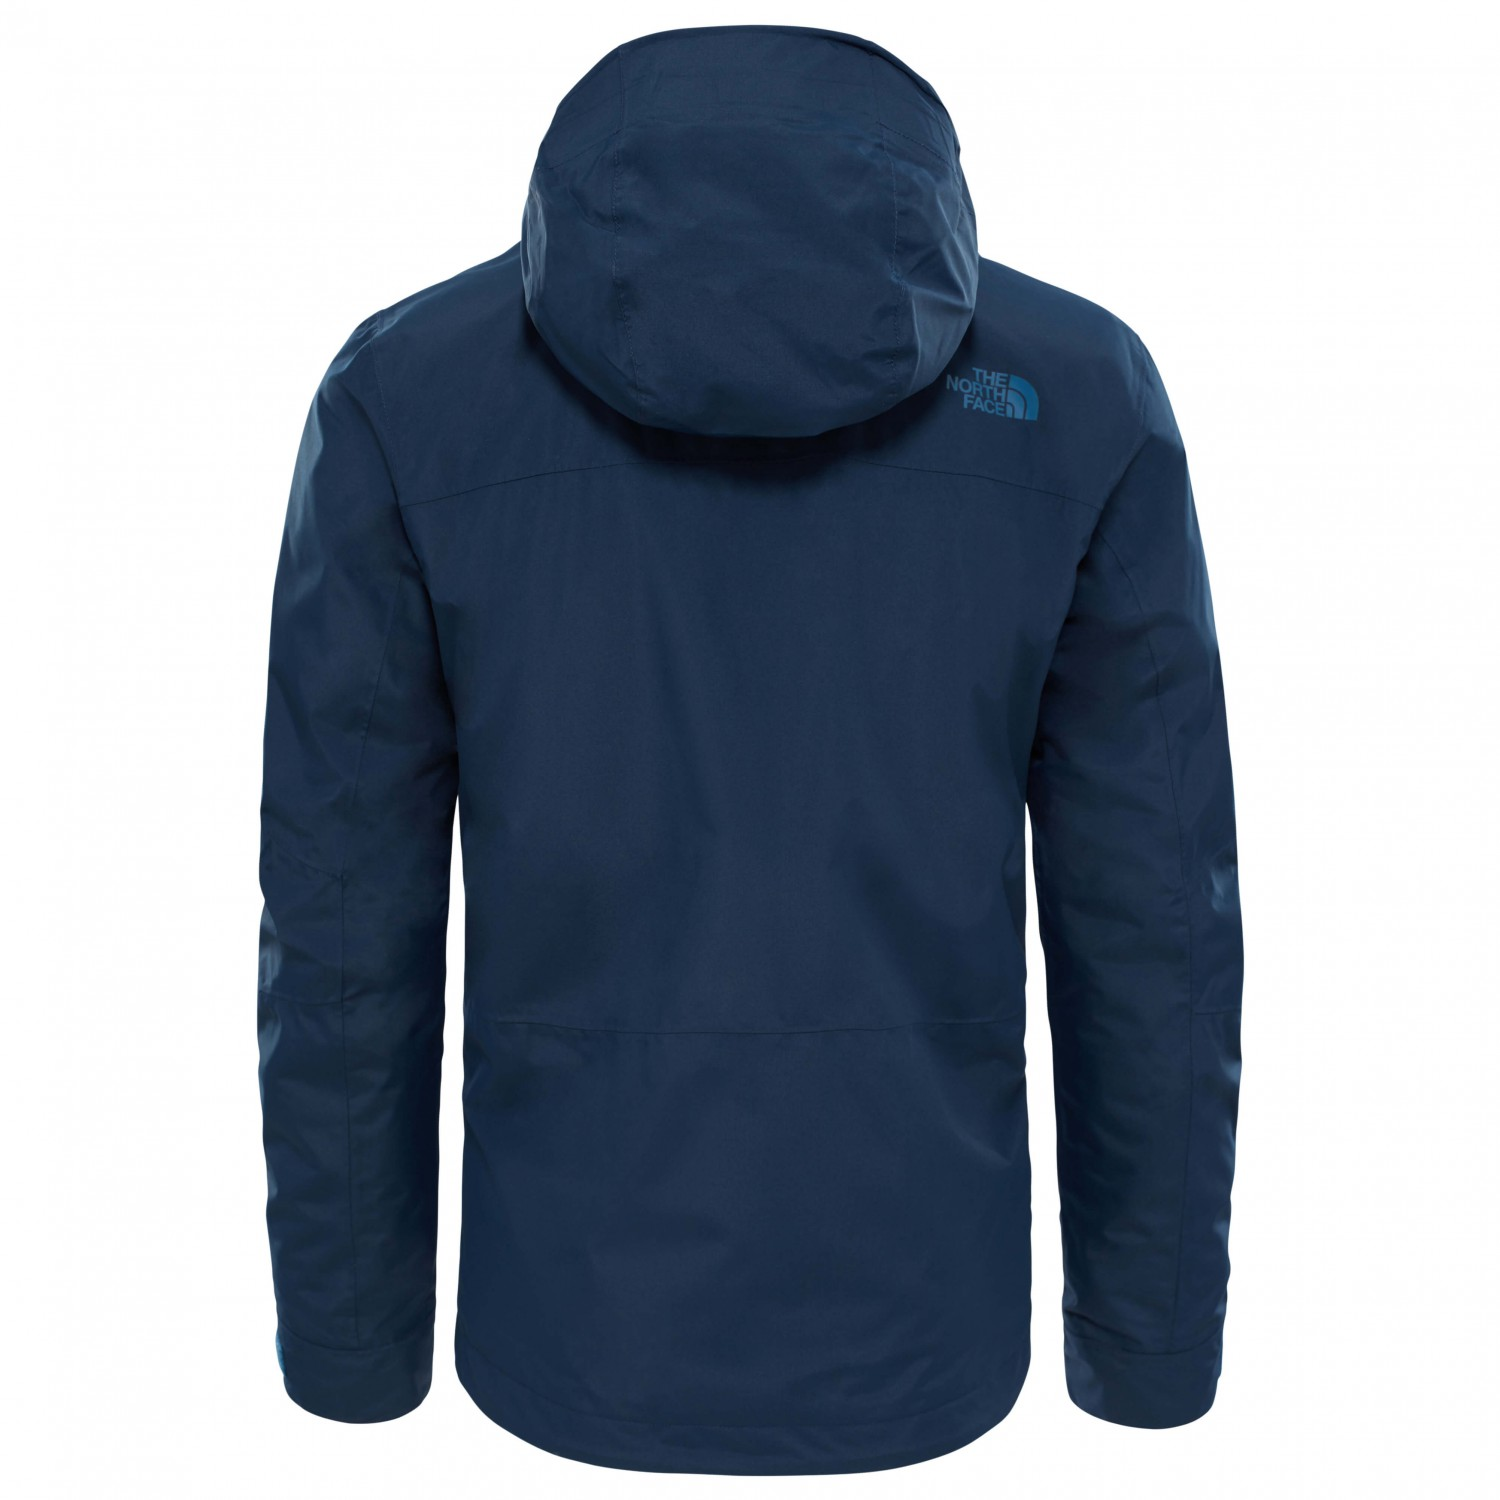 ... The North Face - Naslund Triclimate - 3-in-1 jacket ... c56fed953297